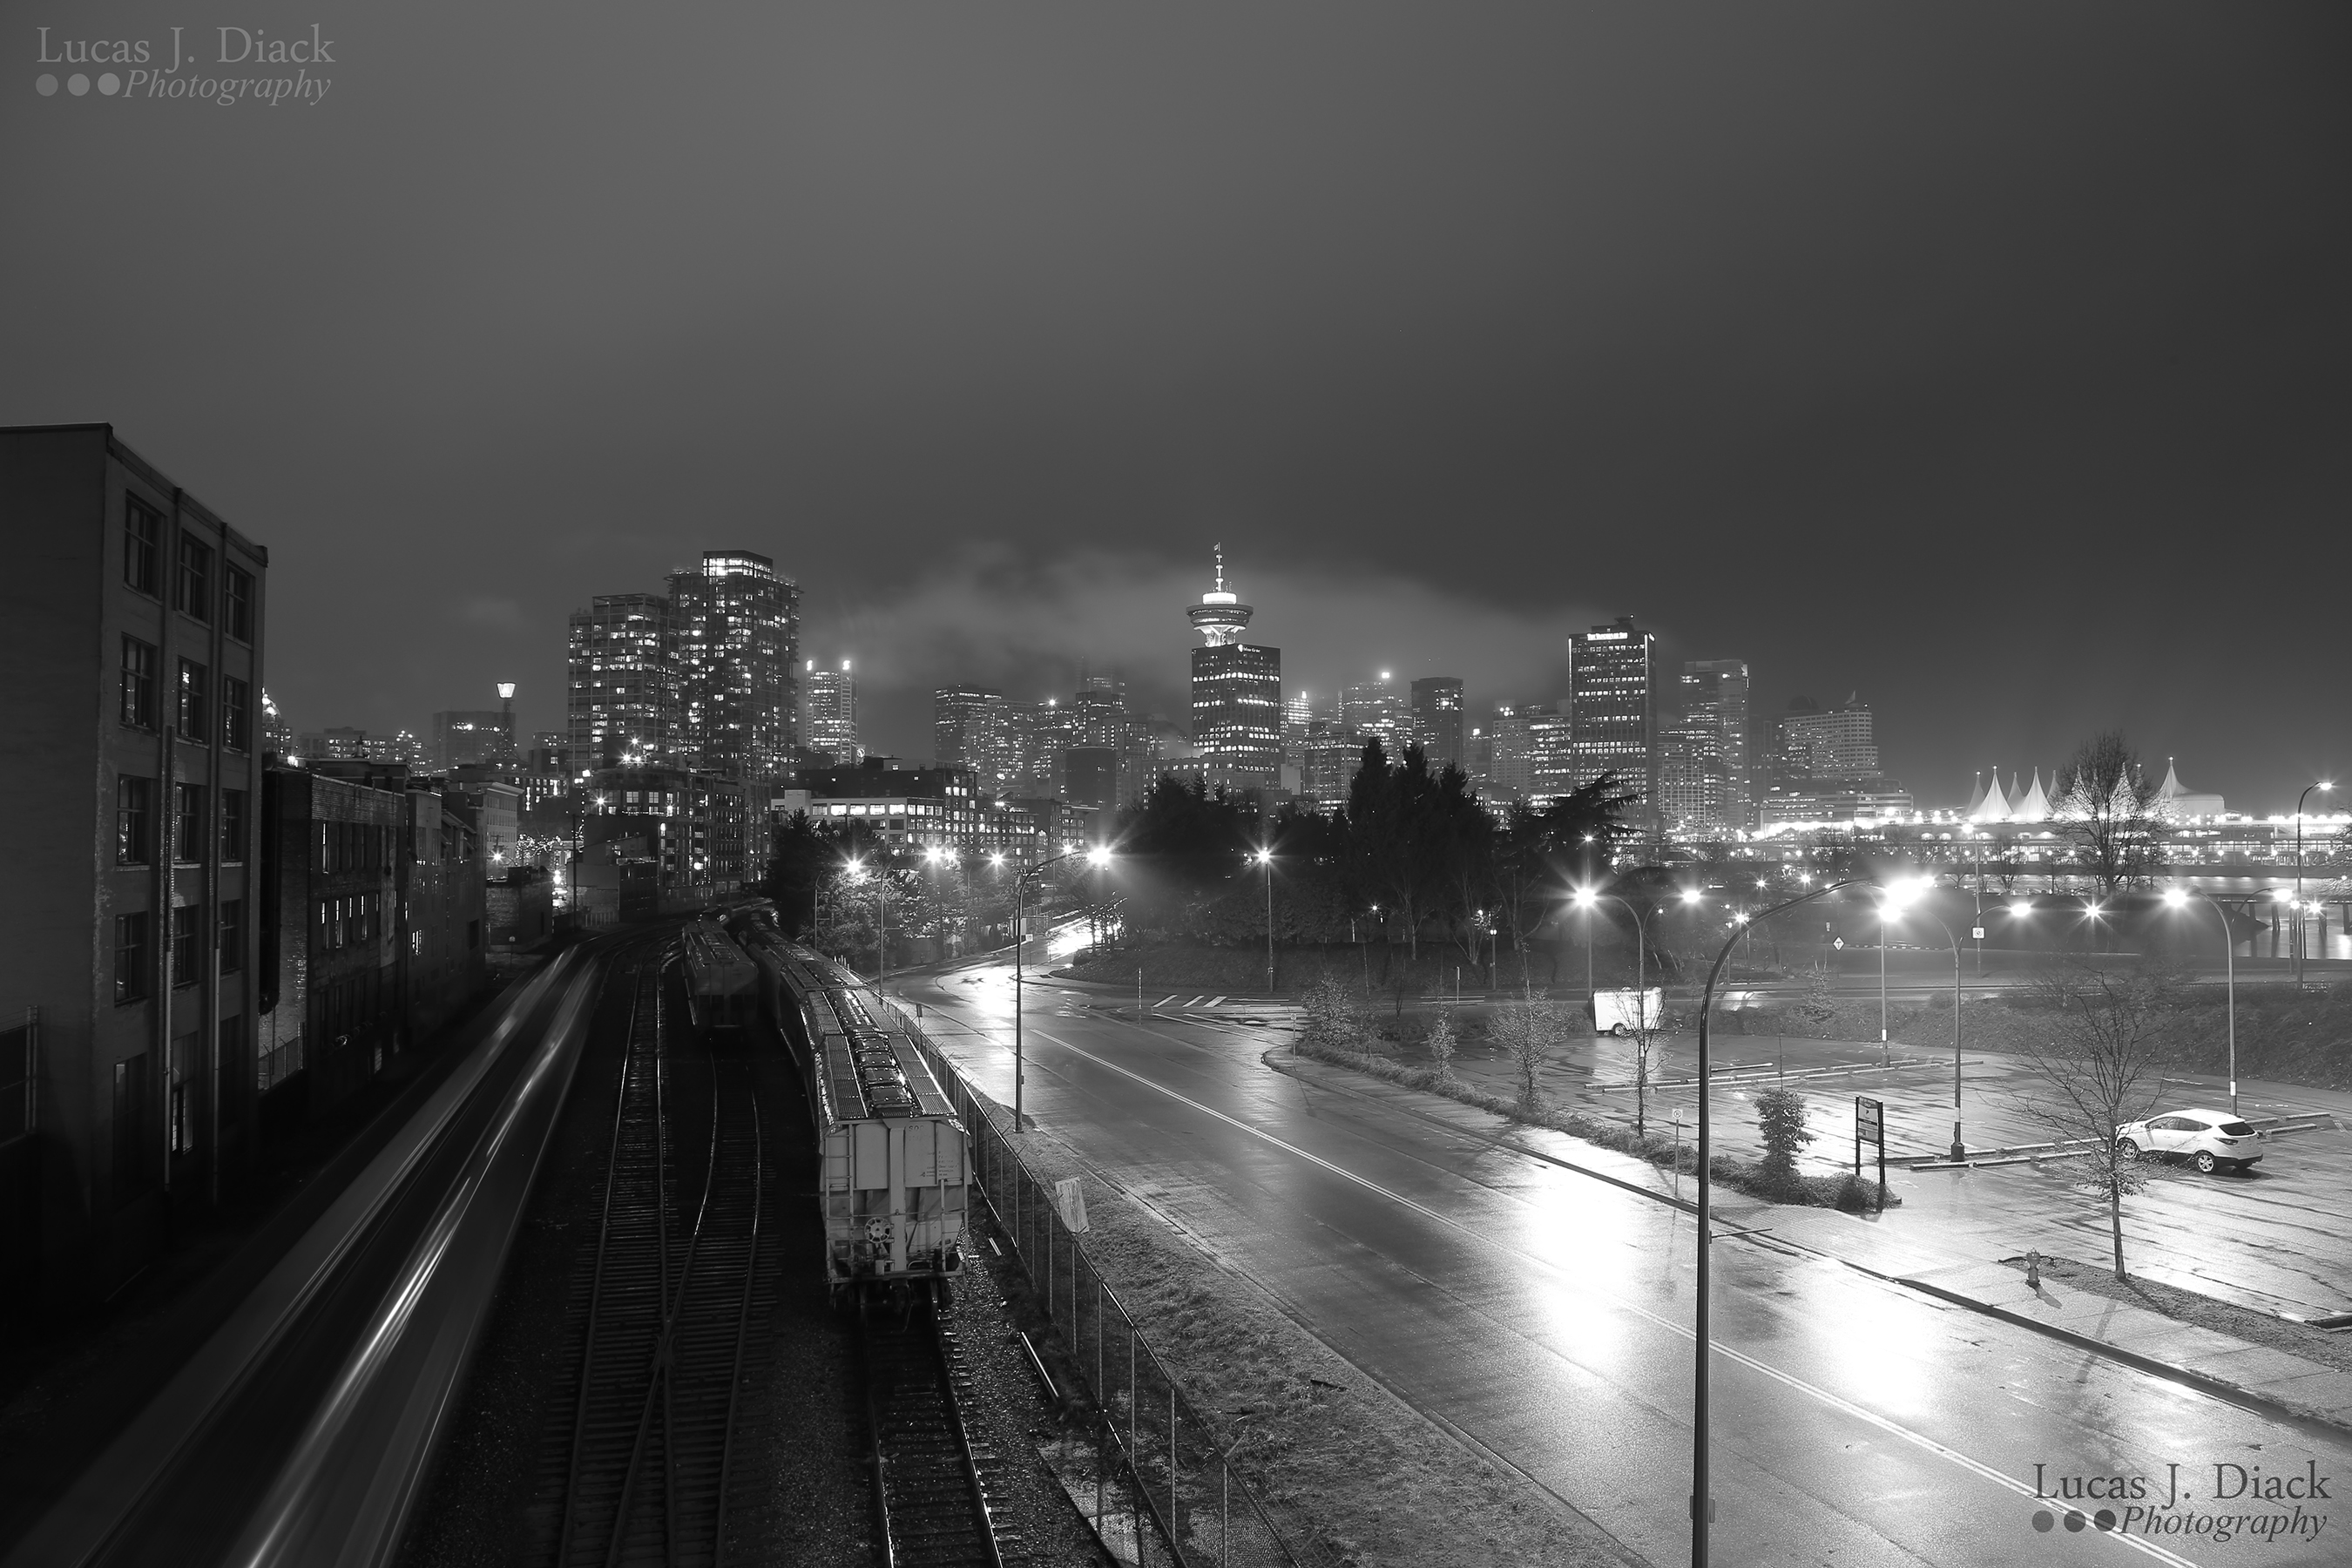 Rainy Night in Vancouver